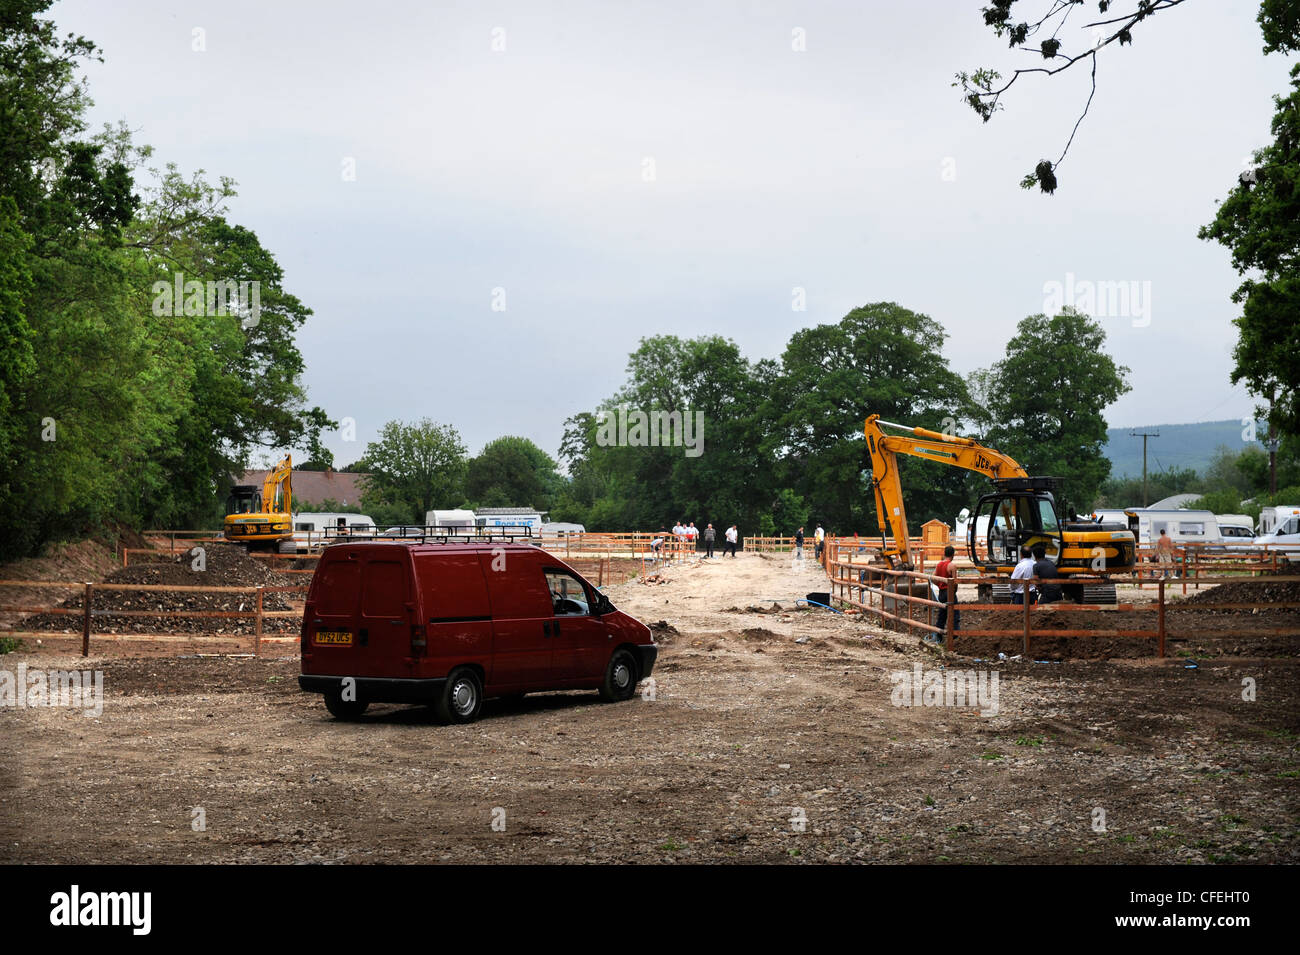 Building work at travellers caravan park site in Southend Lane, near Newent, Gloucestershire 25 May 2009 - After - Stock Image